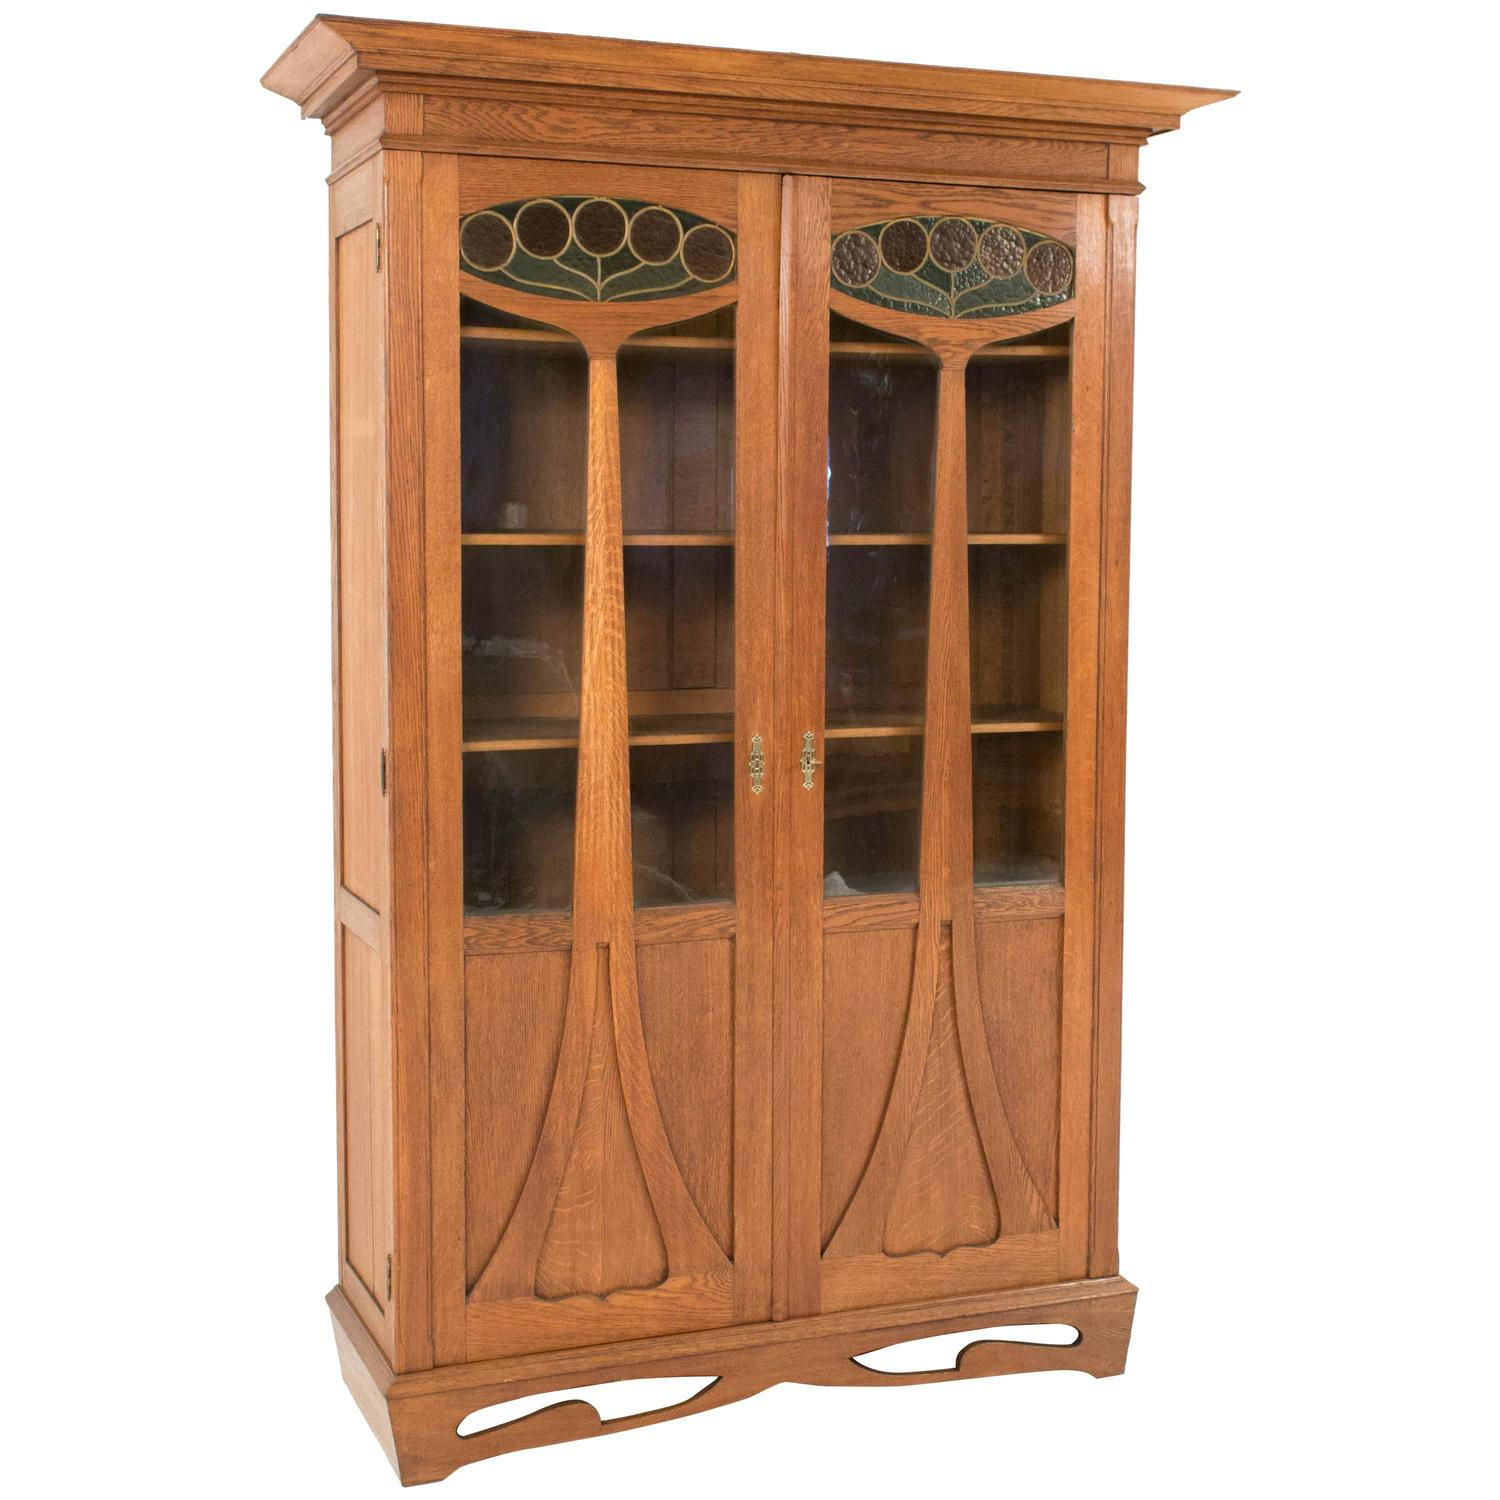 magnificent and rare arts and crafts bookcase with. Black Bedroom Furniture Sets. Home Design Ideas